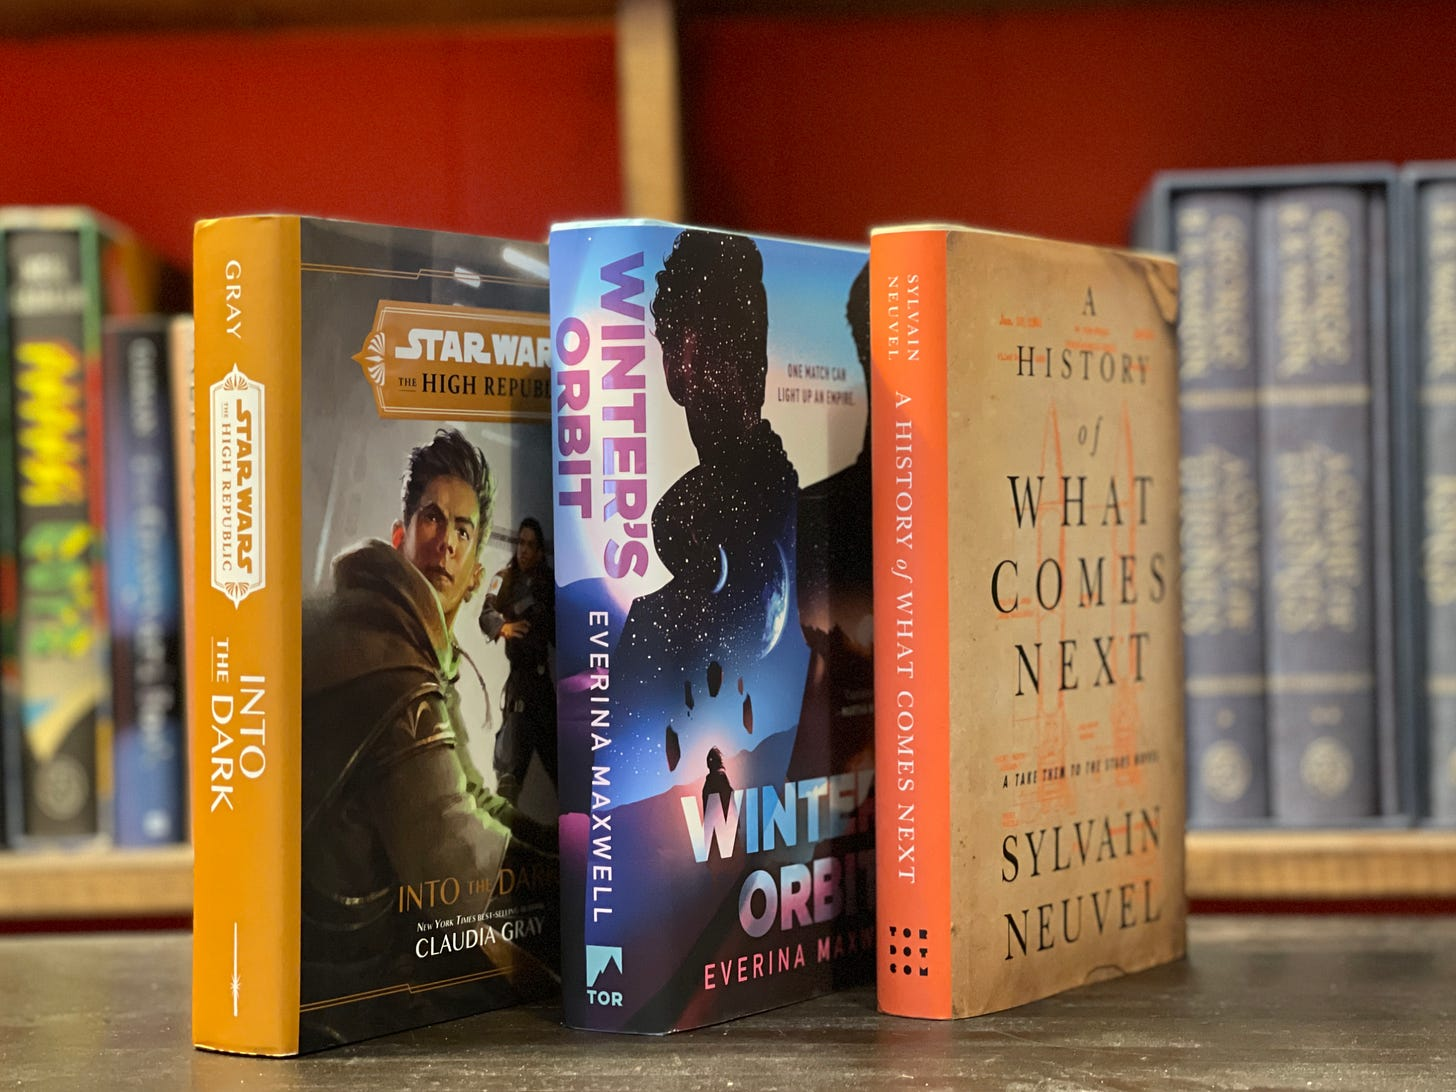 Three books standing on a table: Into the Dark, Winter's Orbit, and History of What Comes Next